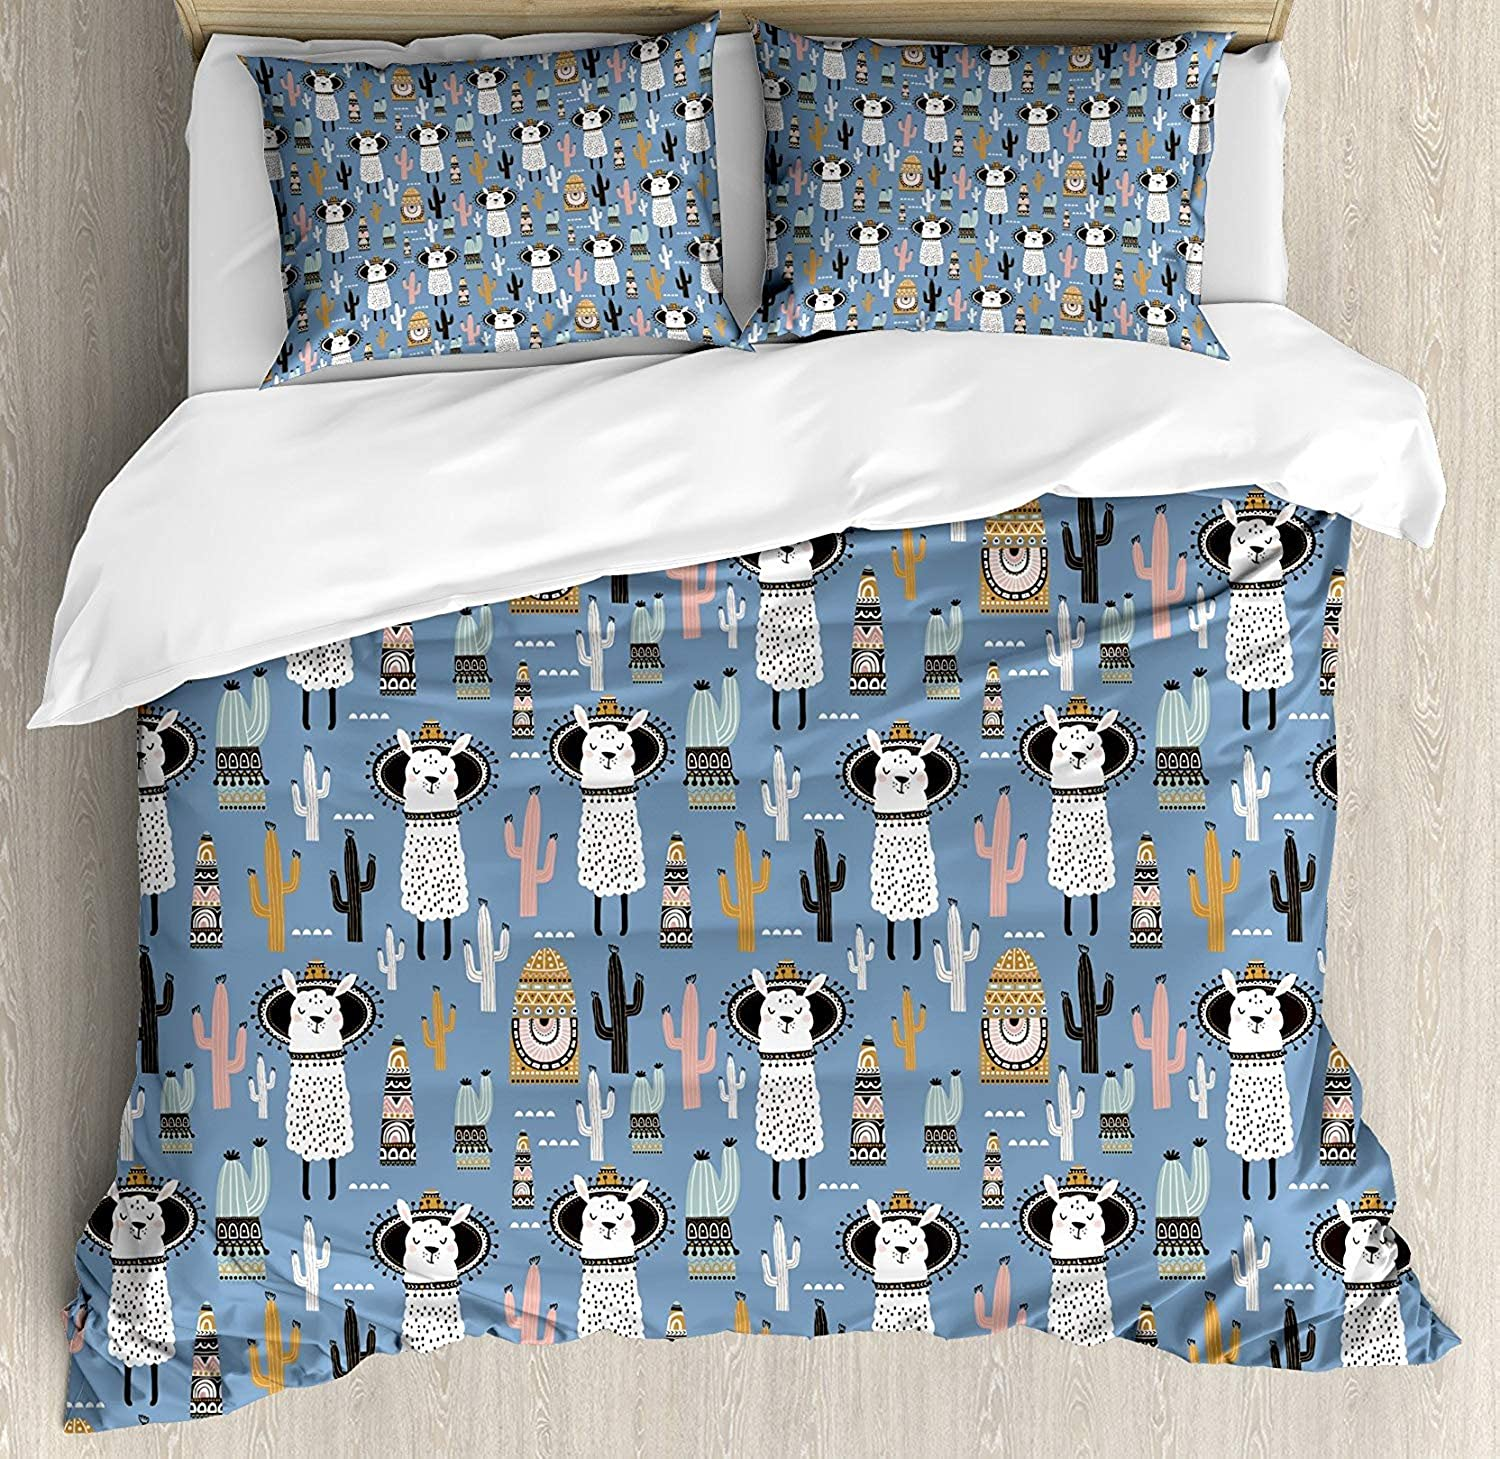 Llama Duvet Cover Set, Luxury Soft Hotel Quality 4 Piece King Plush Microfiber Bedding Sets, Cute Llamas with Tribal Aztec Native American Style Primitive Kids Playroom Theme